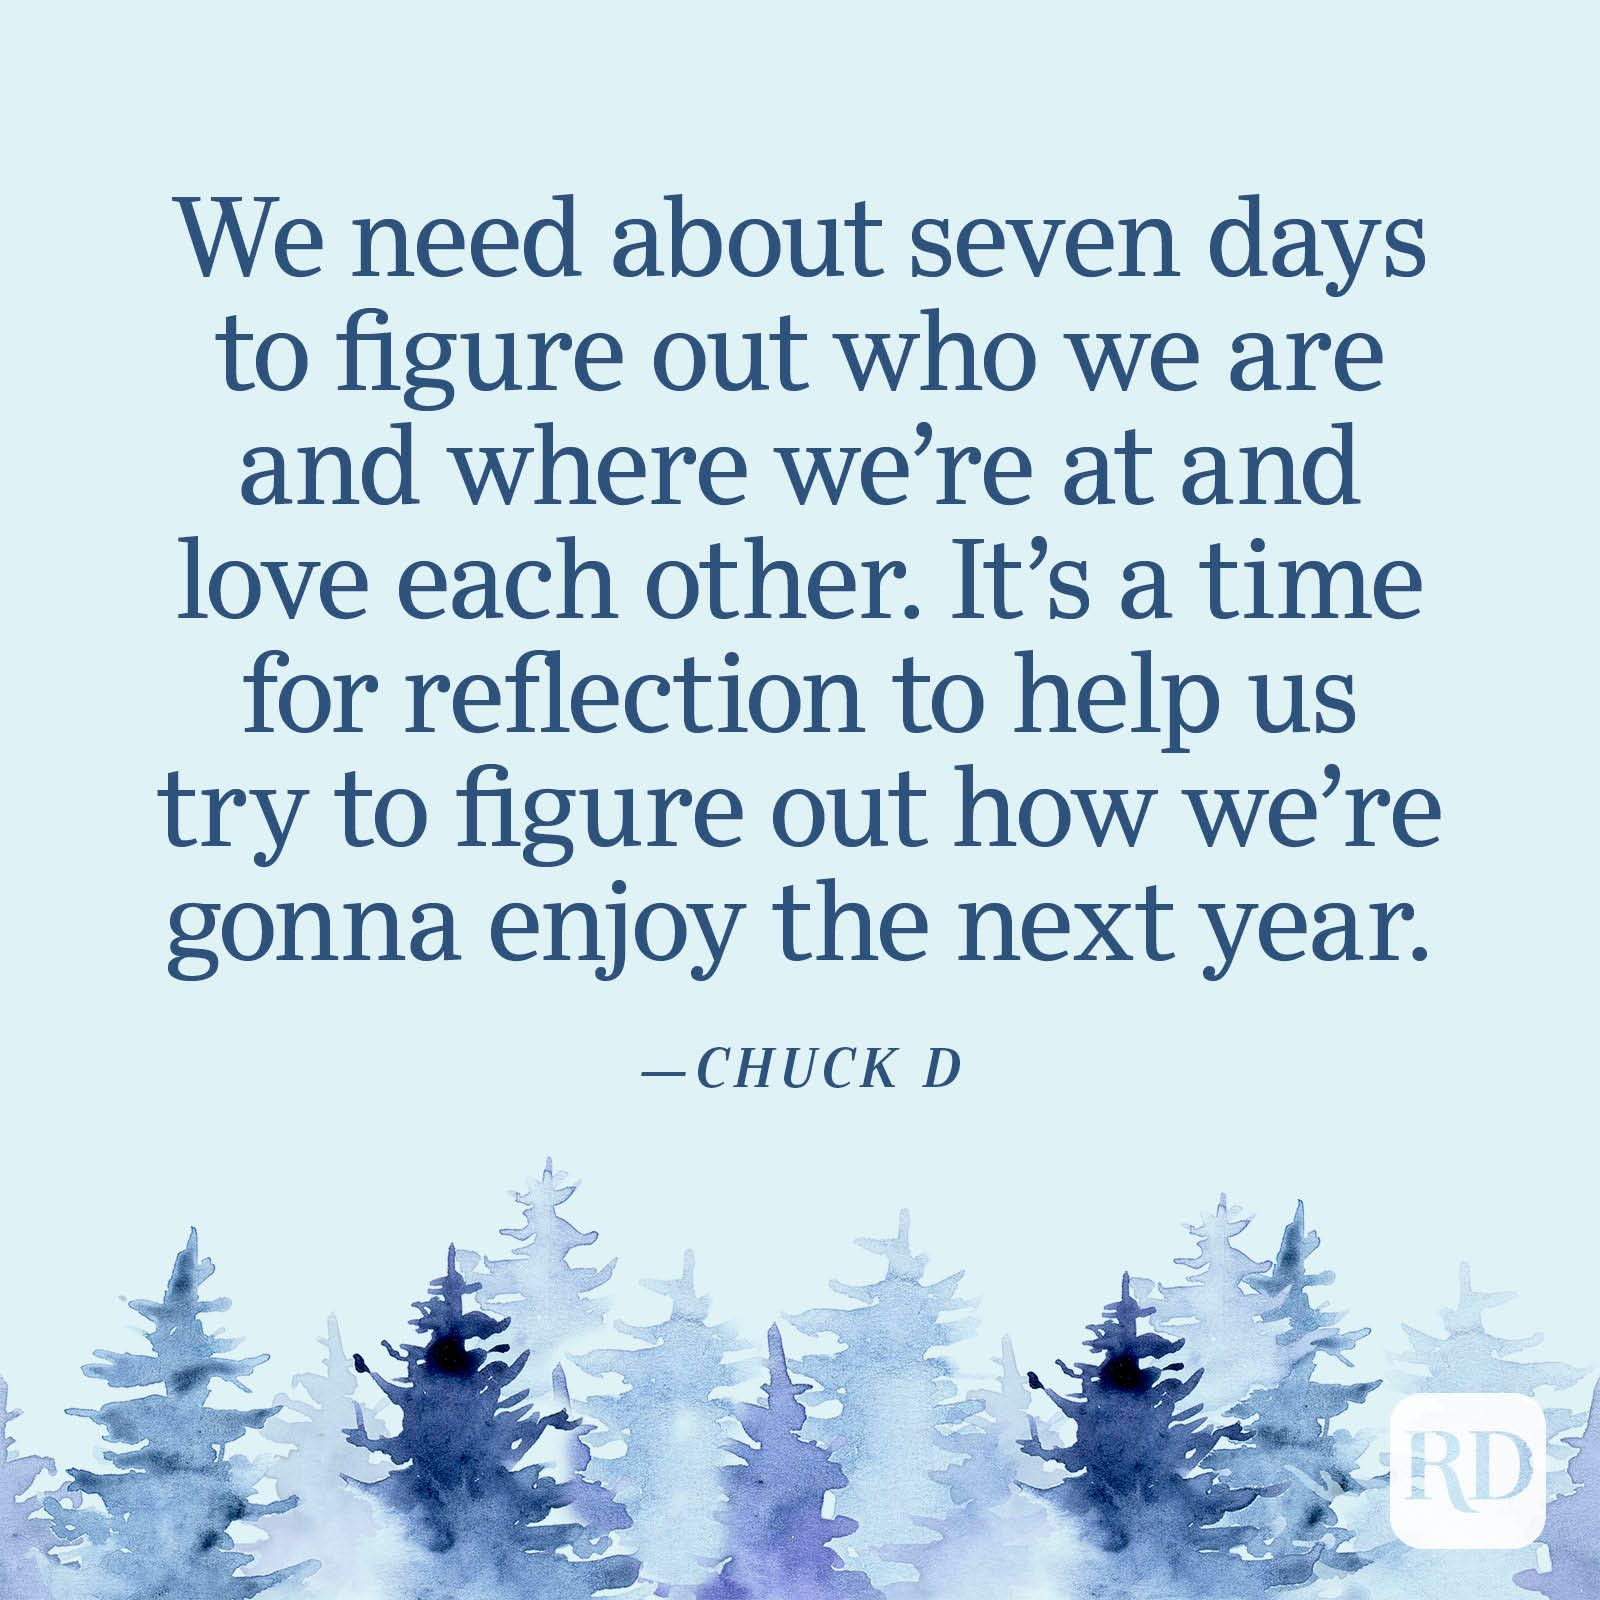 """""""We need about seven days to figure out who we are and where we're at and love each other. It's a time for reflection to help us try to figure out how we're gonna enjoy the next year."""" —Chuck D"""